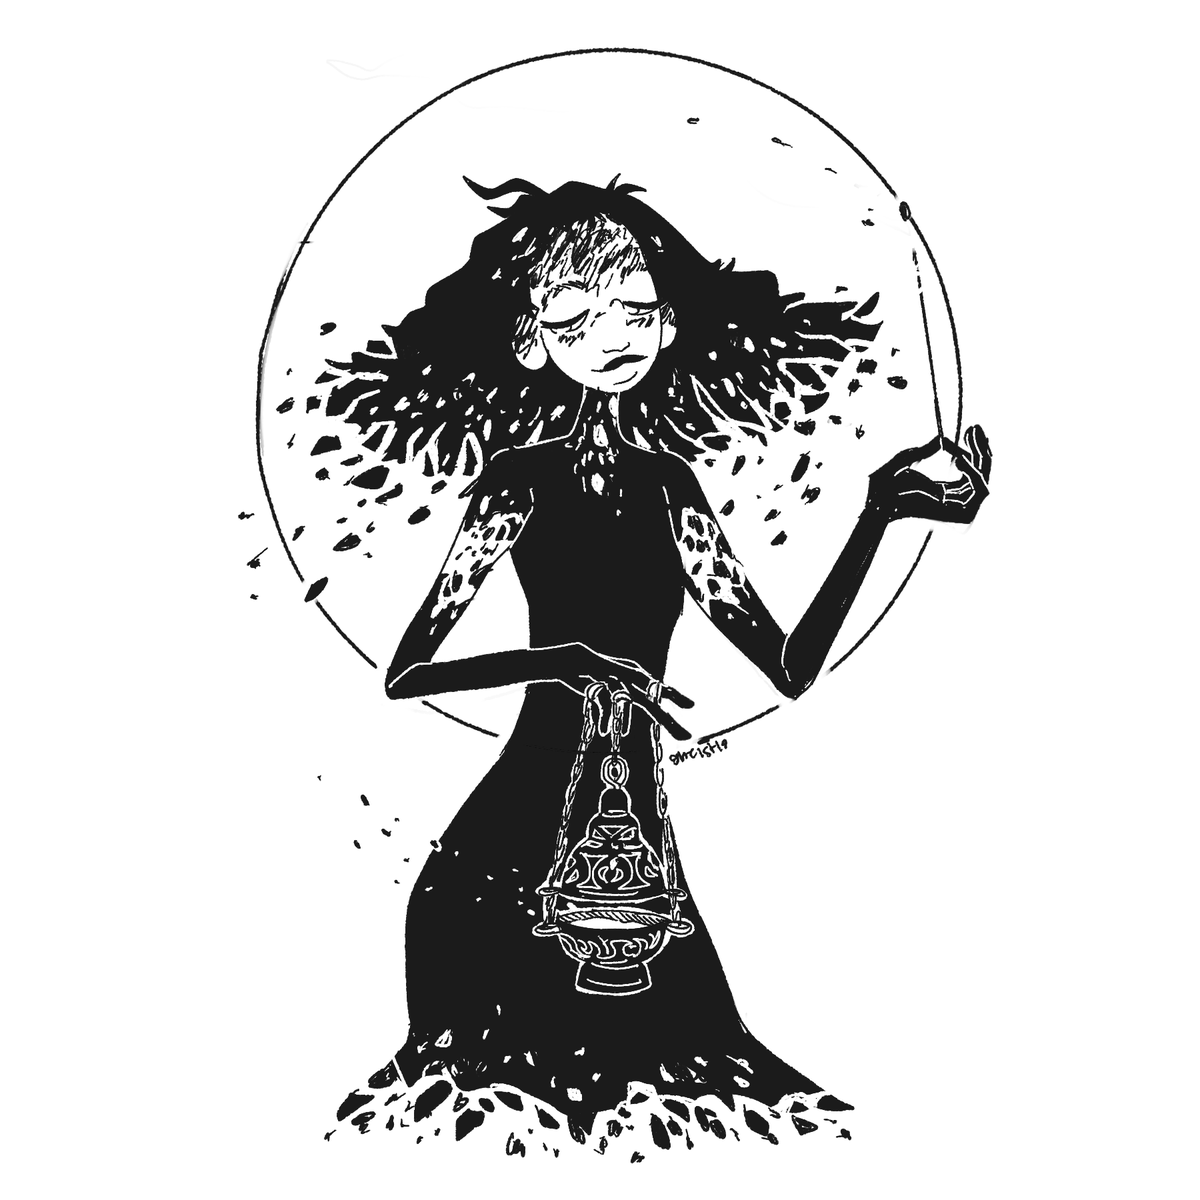 some old #inktober witches i drew before, that i liked. as is with each inktober, i never actually finished the month ;__; pic.twitter.com/M3sasyFx7n